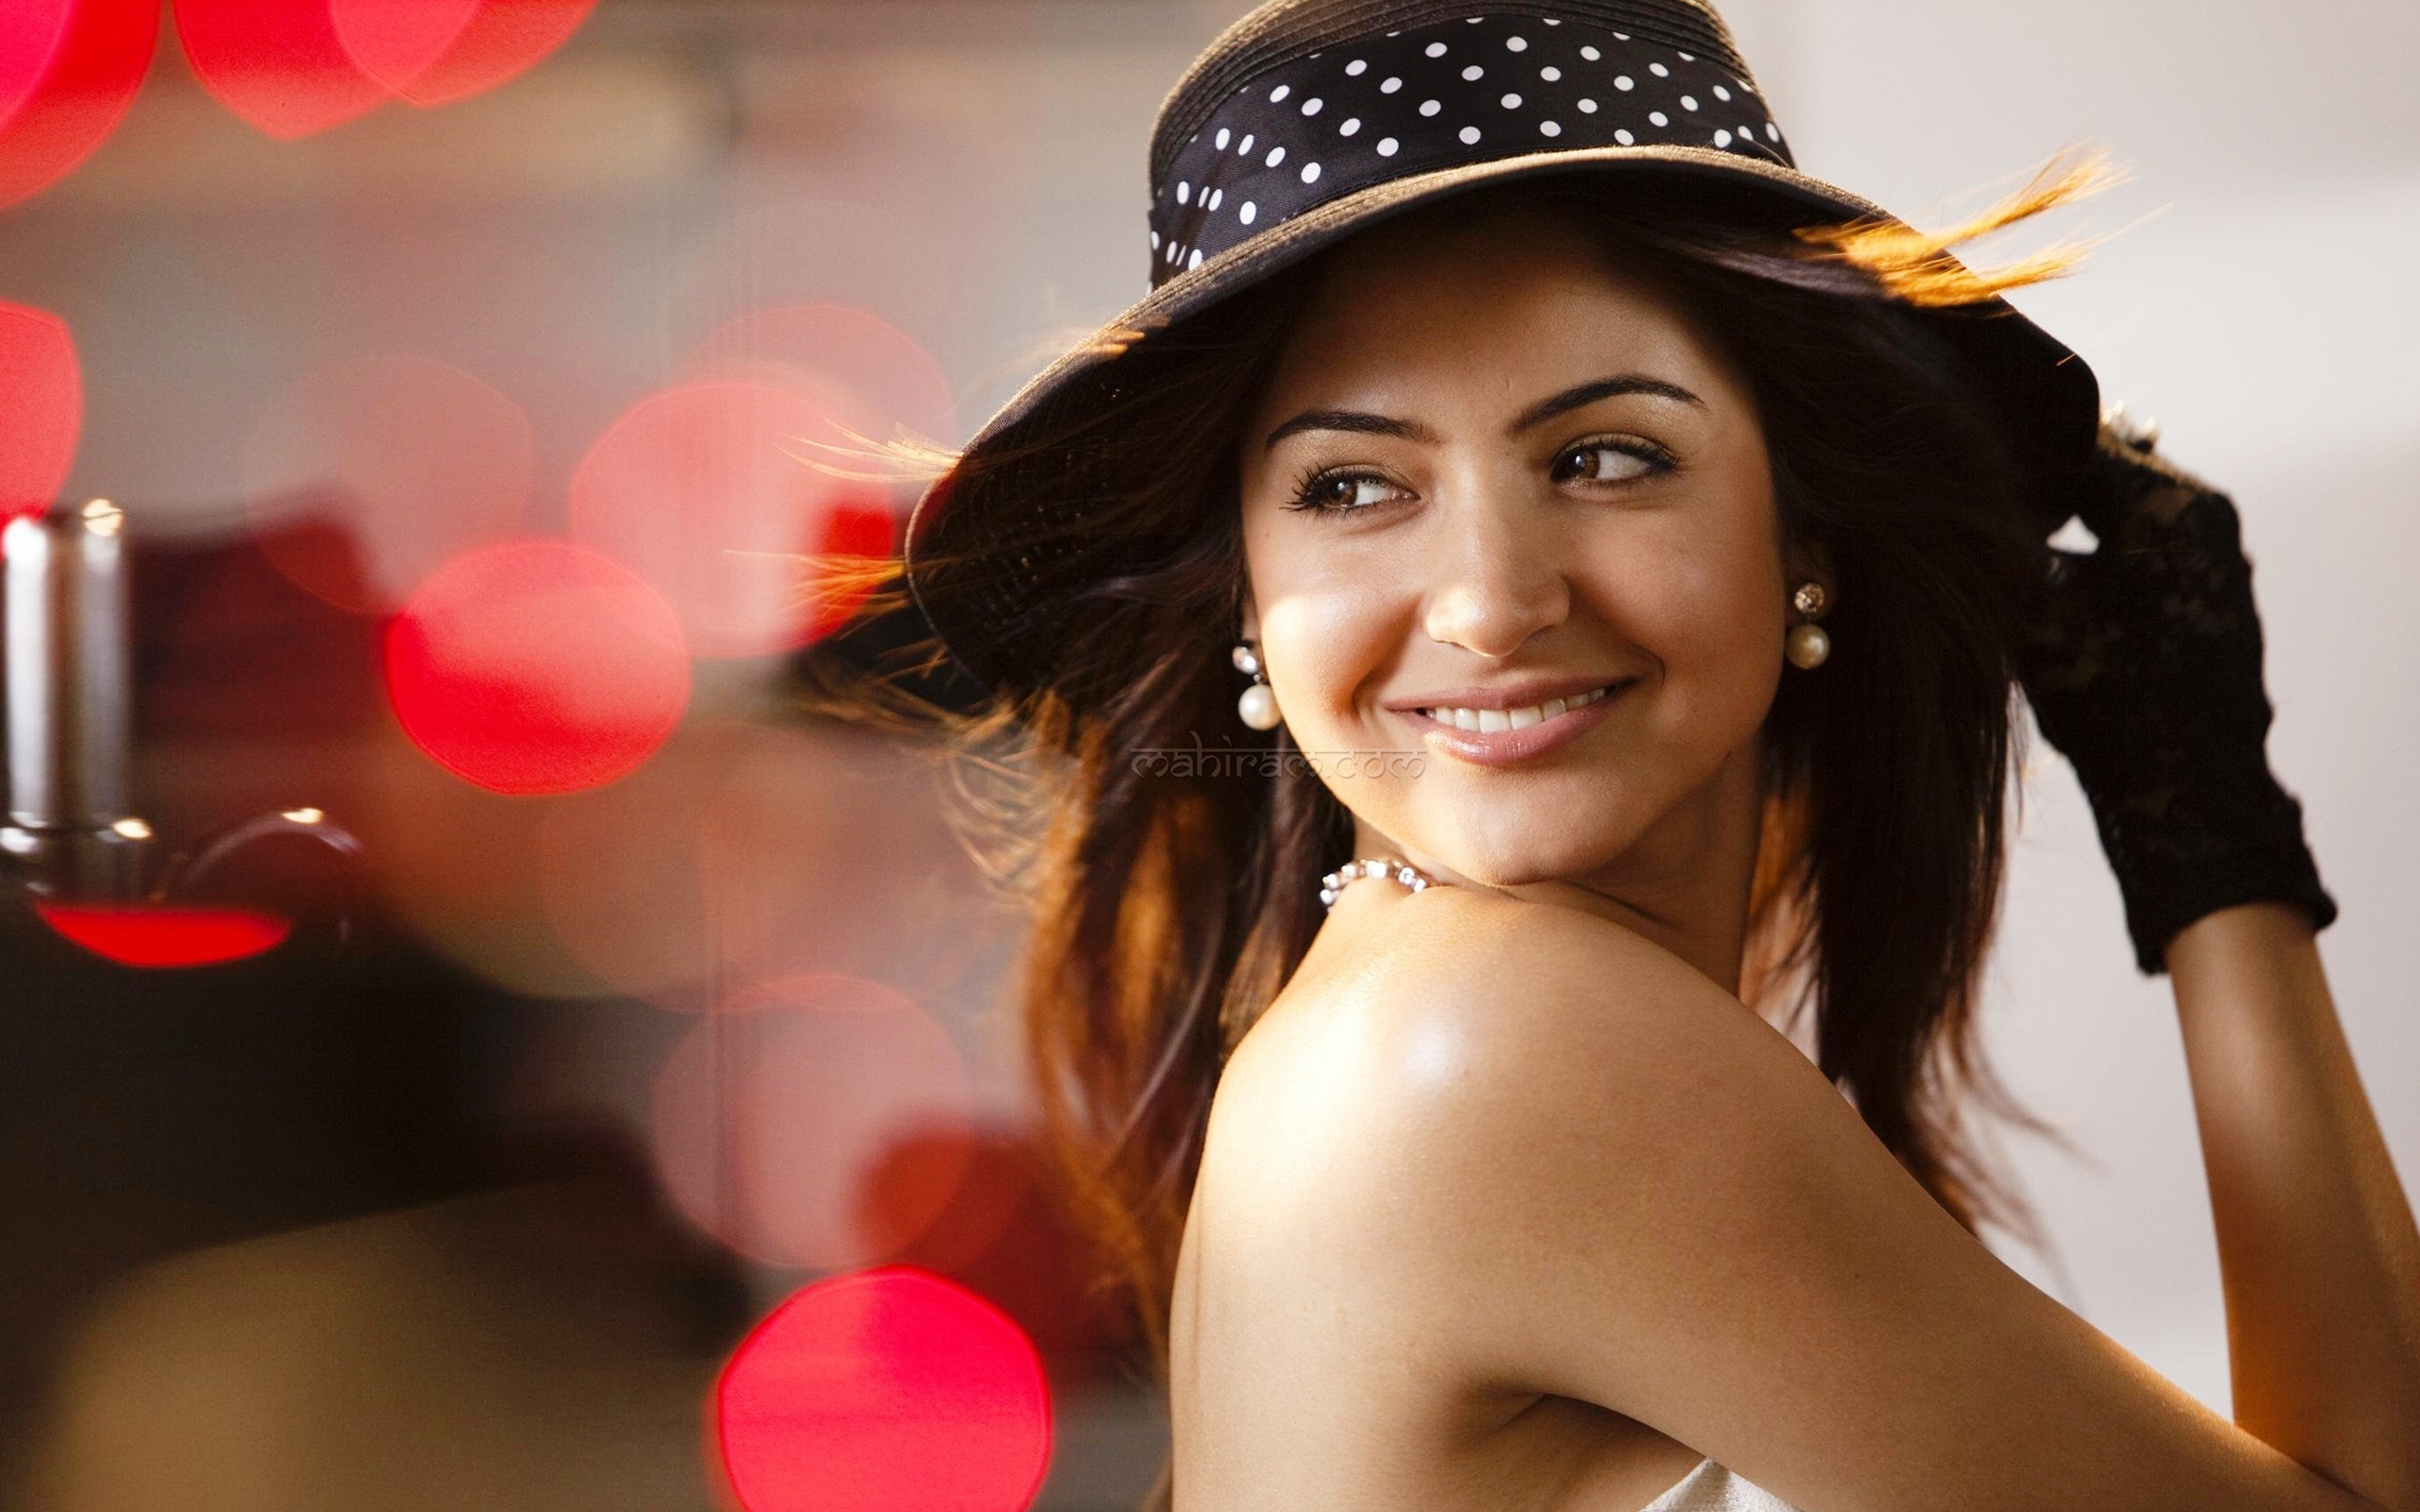 anushka sharma wallpapers in jpg format for free download